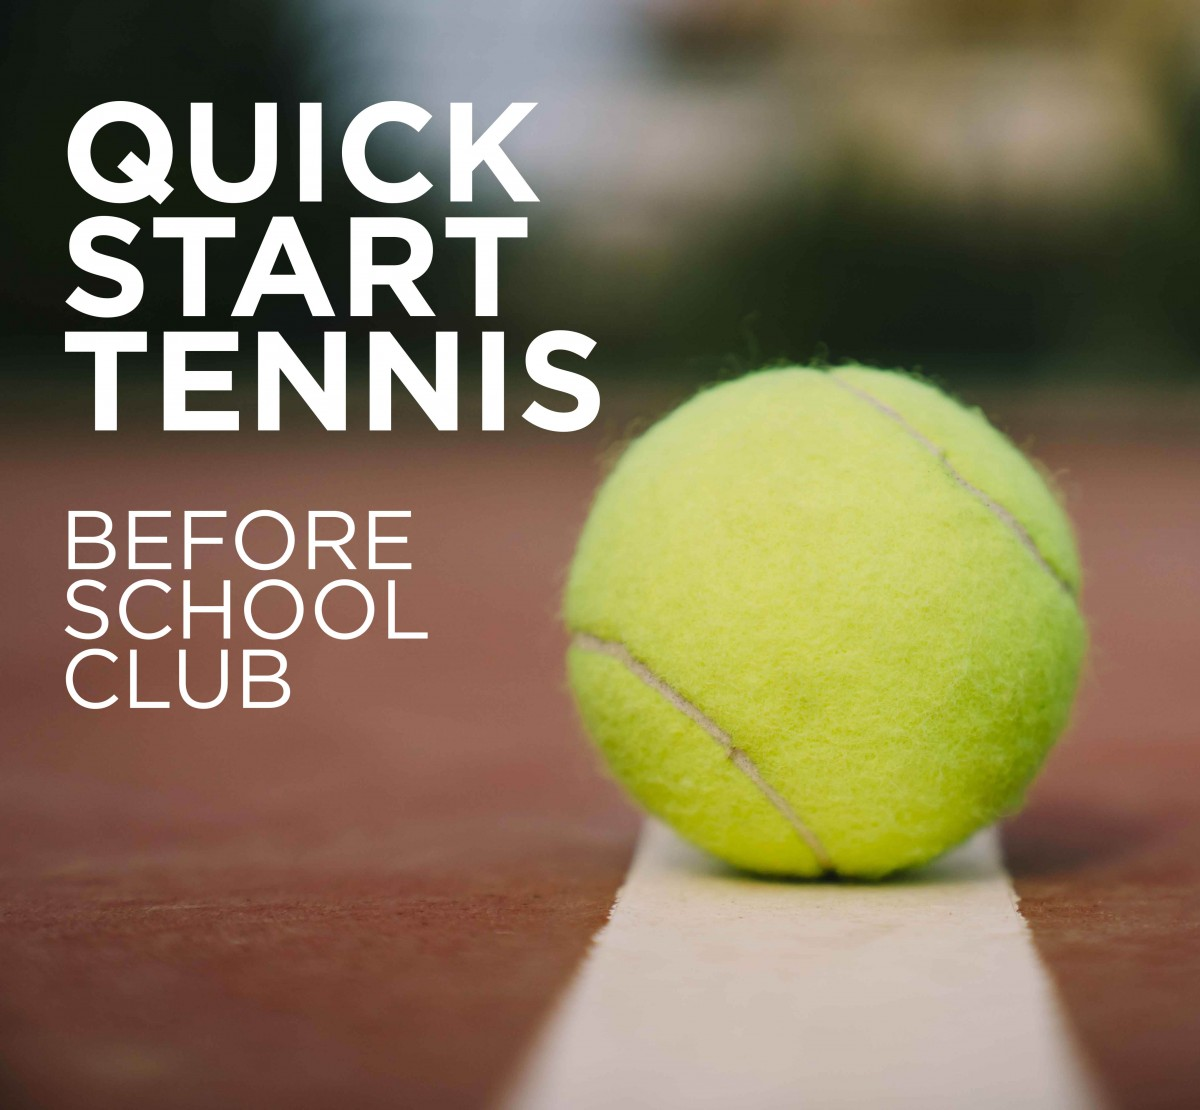 Thumbnail for Join the Quick Start Tennis Before School Club at Temple Hill!